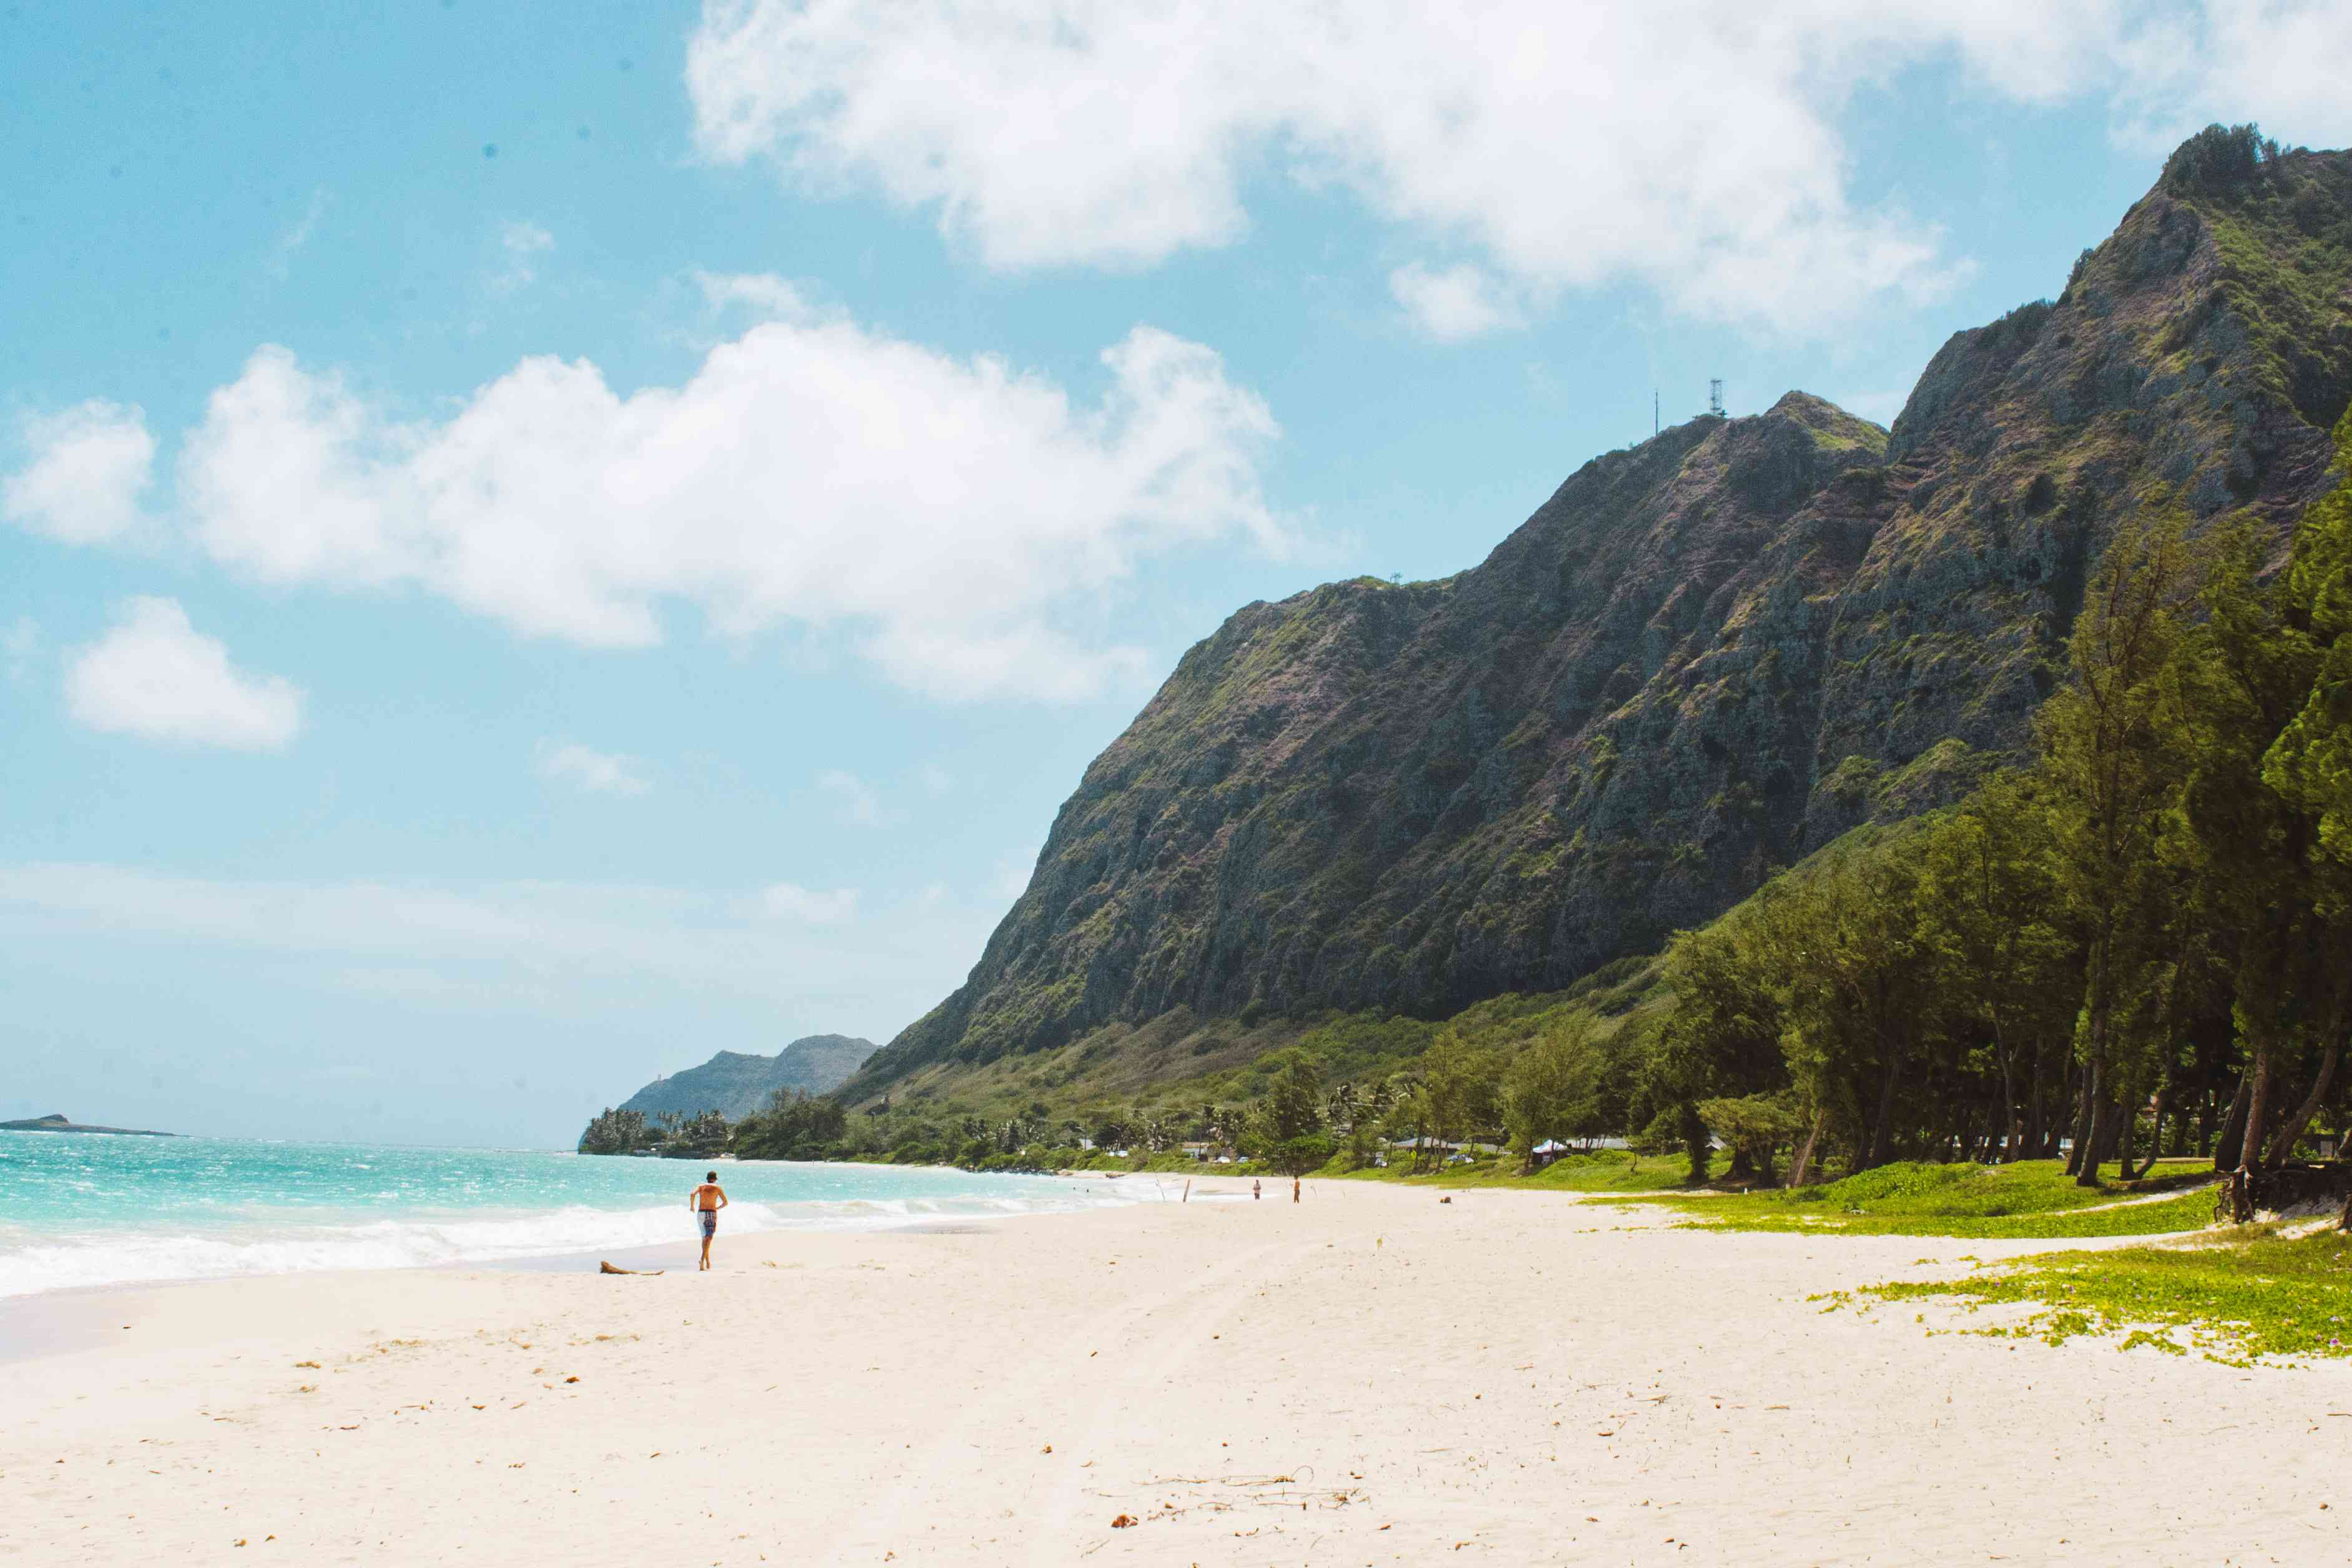 Waimanalo Beach with mountains in the background